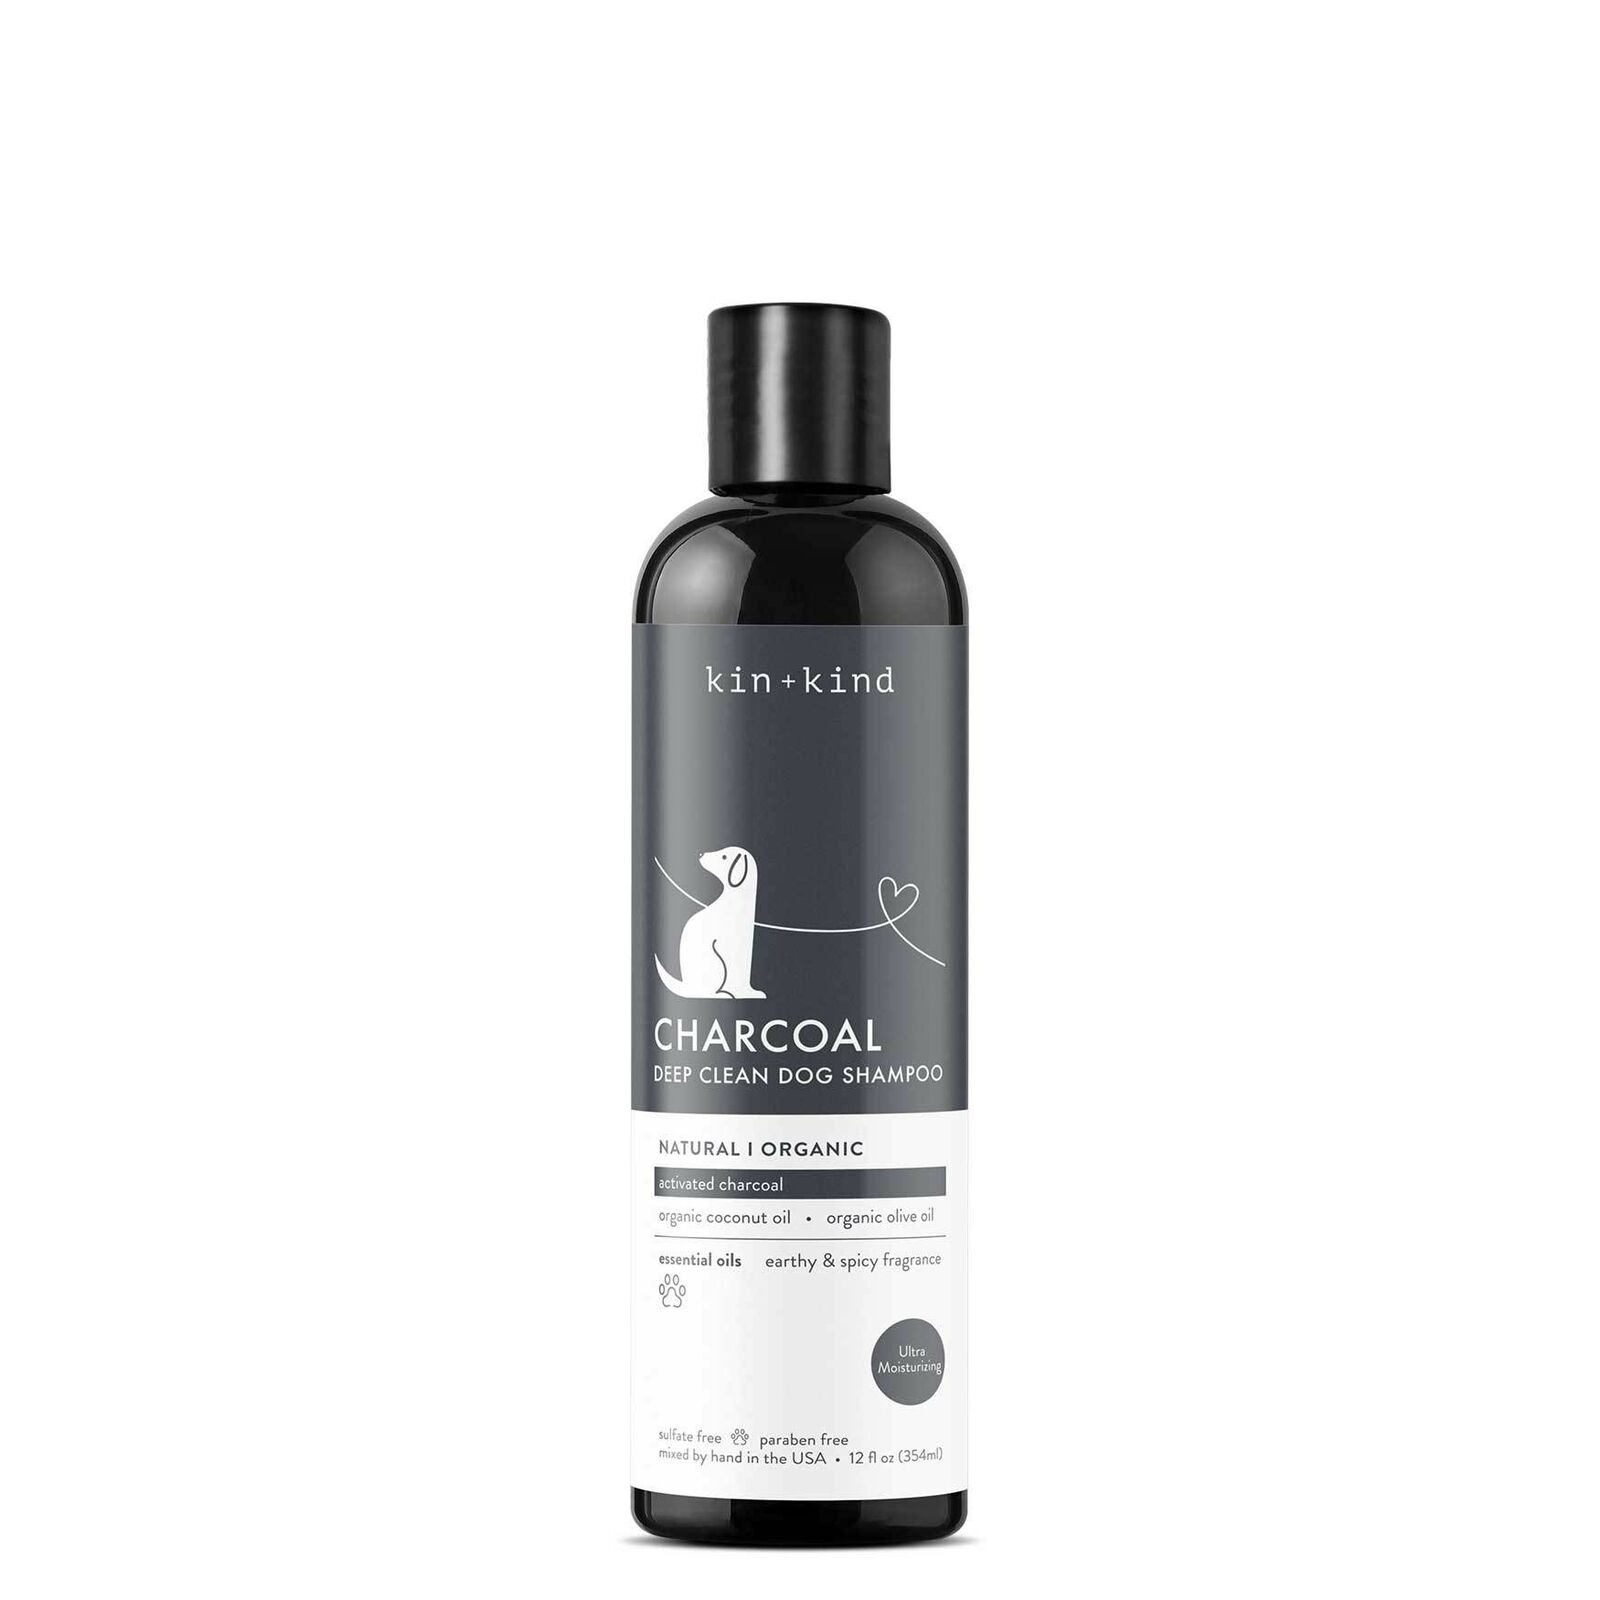 Kin+Kind Charcoal Deep Clean Dog Shampoo, 12-oz